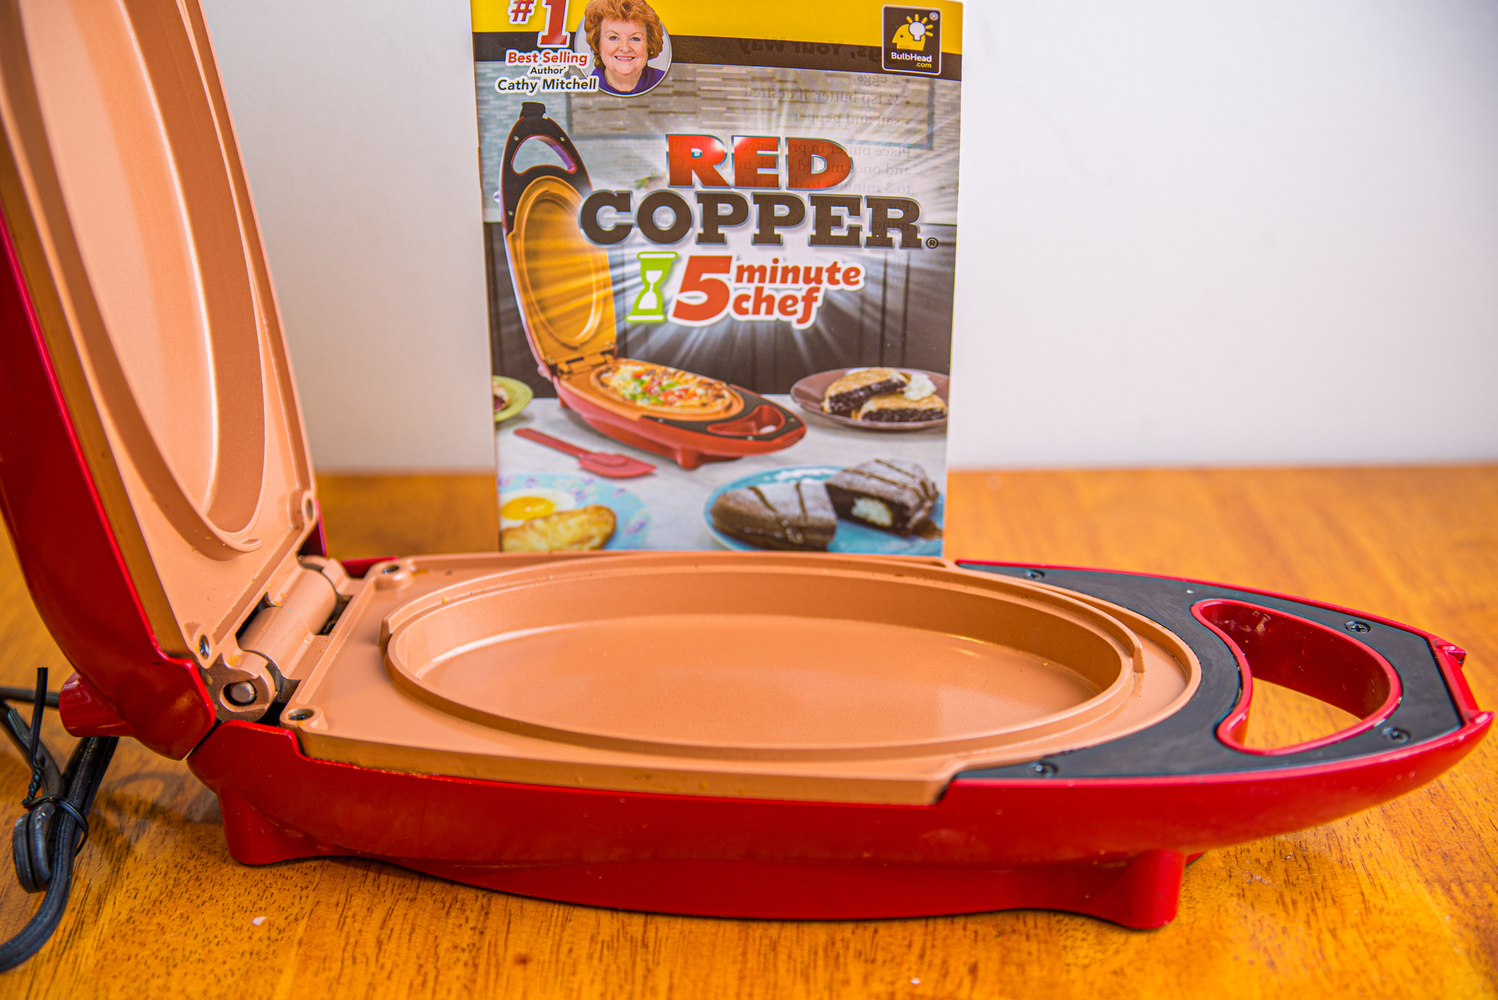 Red Copper Chef by Gary Brosius